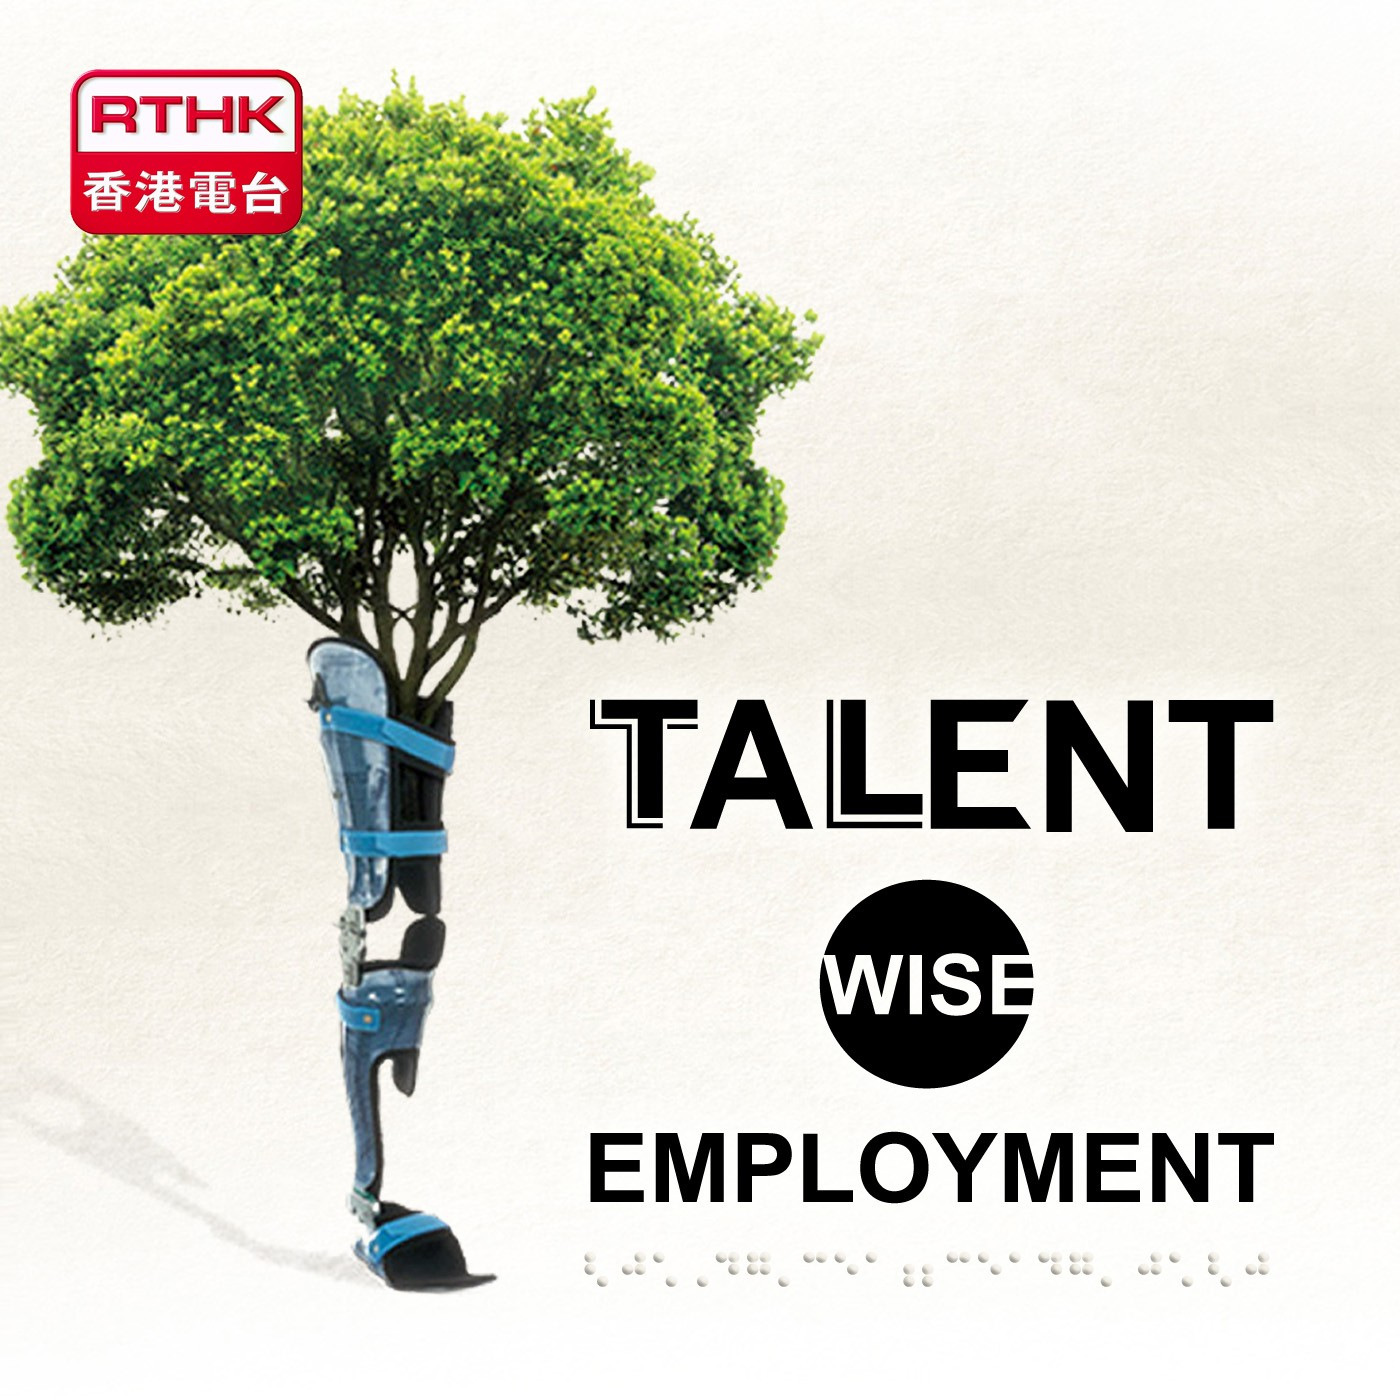 Talent-Wise Employment